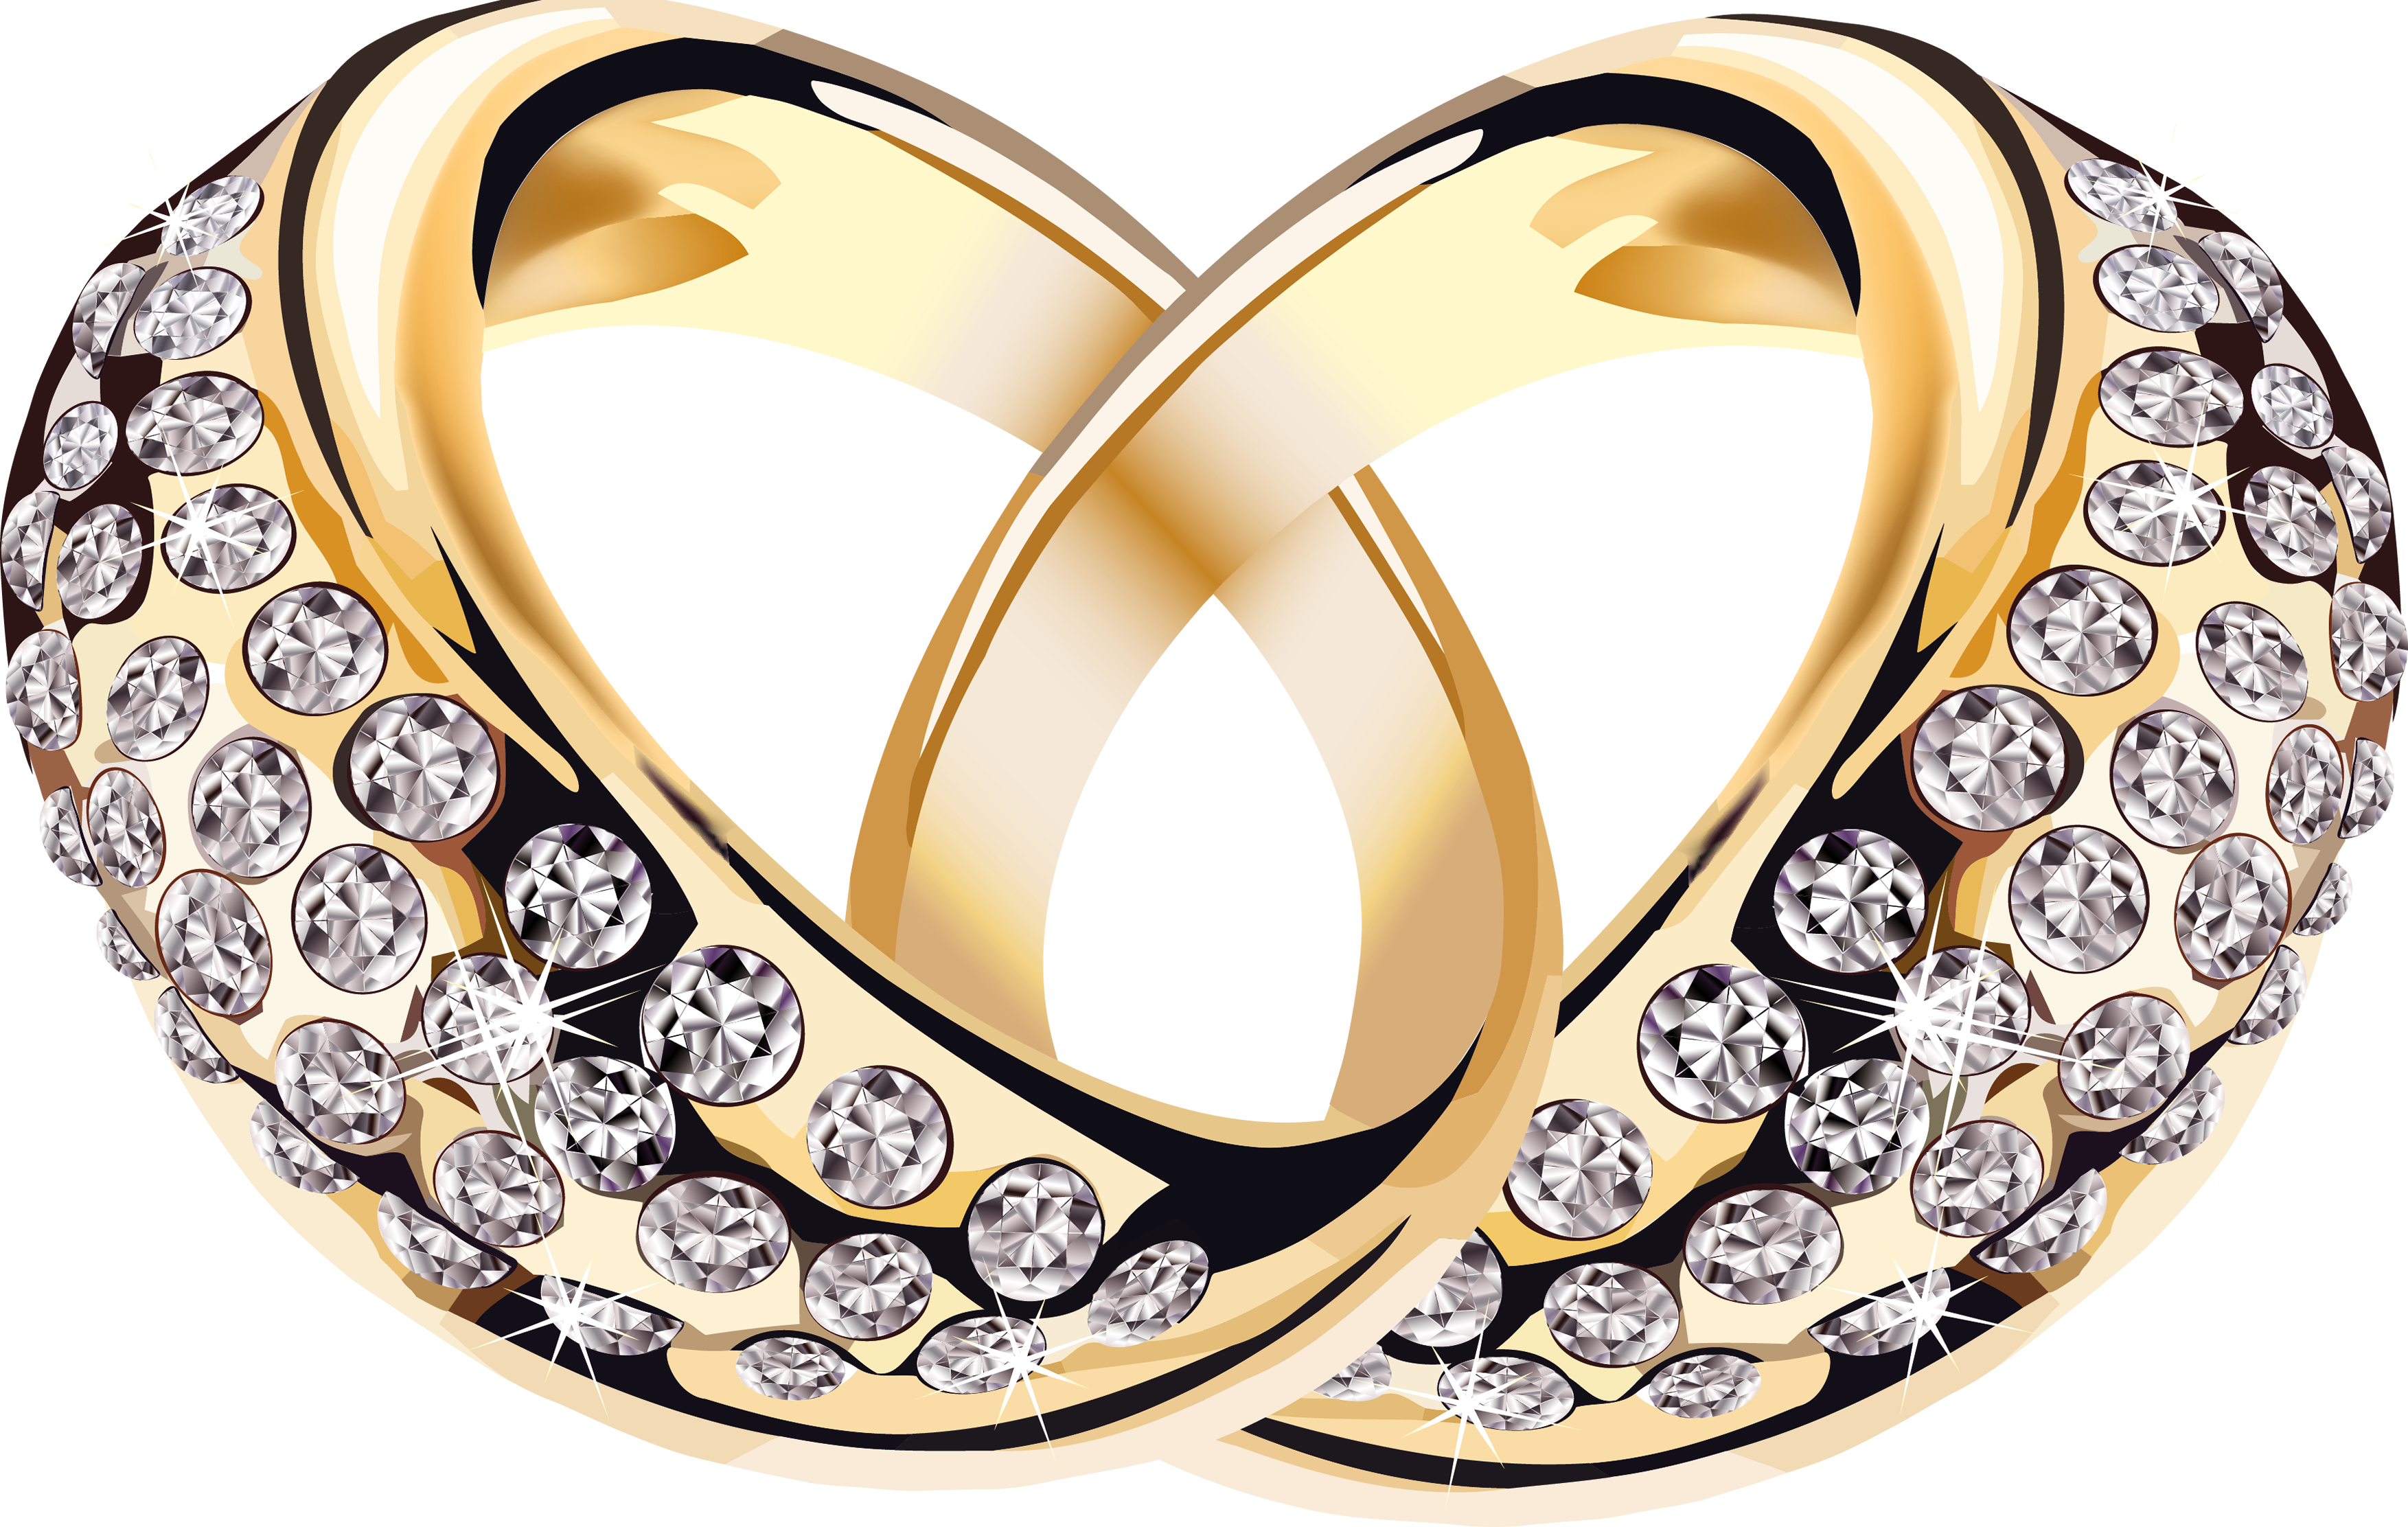 Clipart jewellers silvostyle image stock HQ Jewellery PNG Transparent Jewellery.PNG Images. | PlusPNG image stock